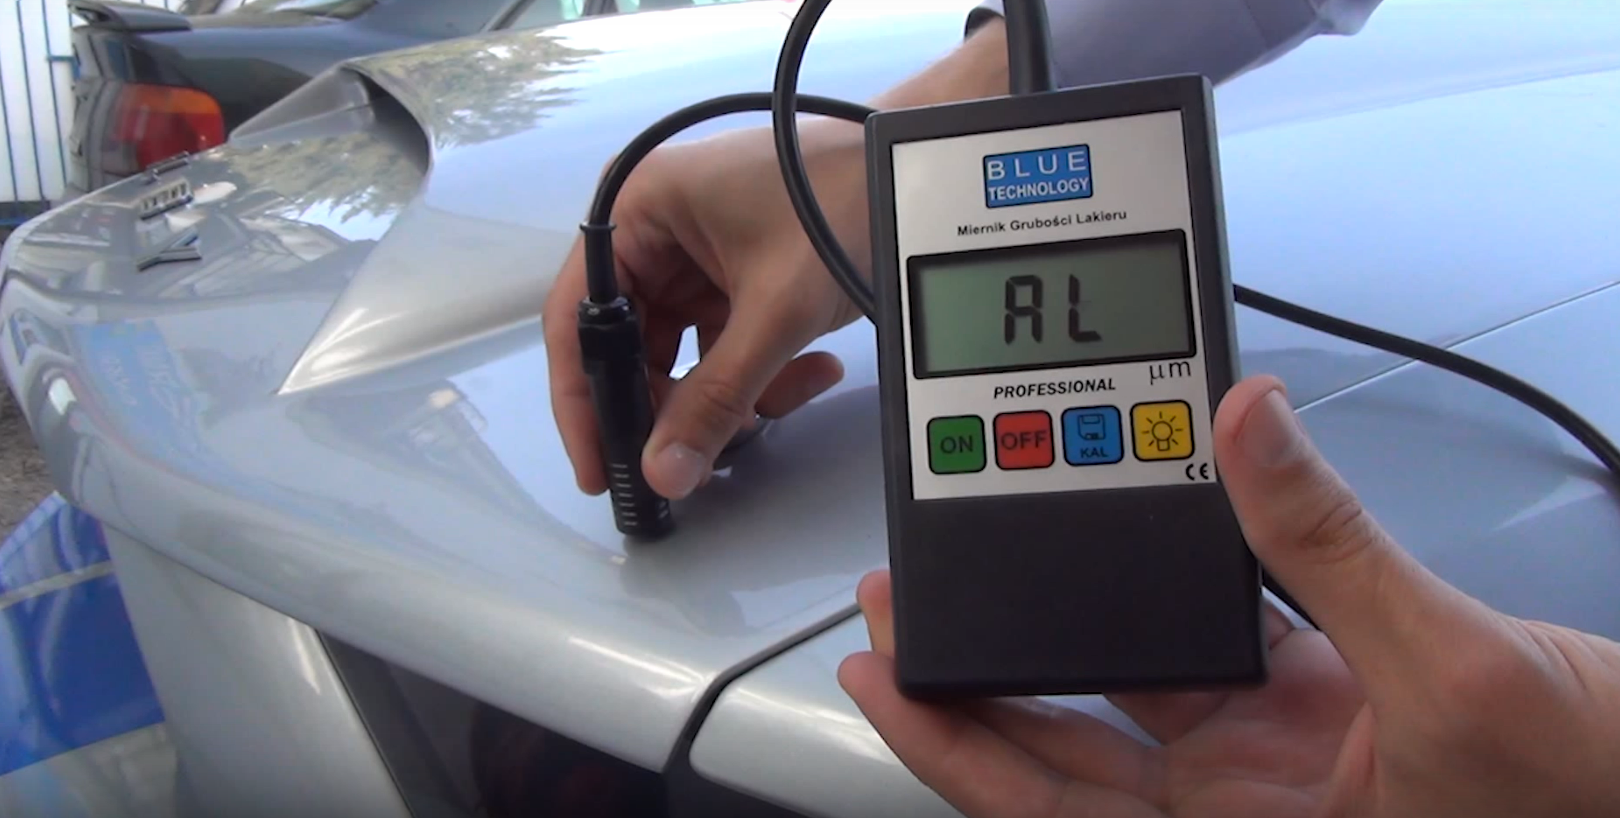 Paint coating thickness gauge find aluminium surfaces on the hood